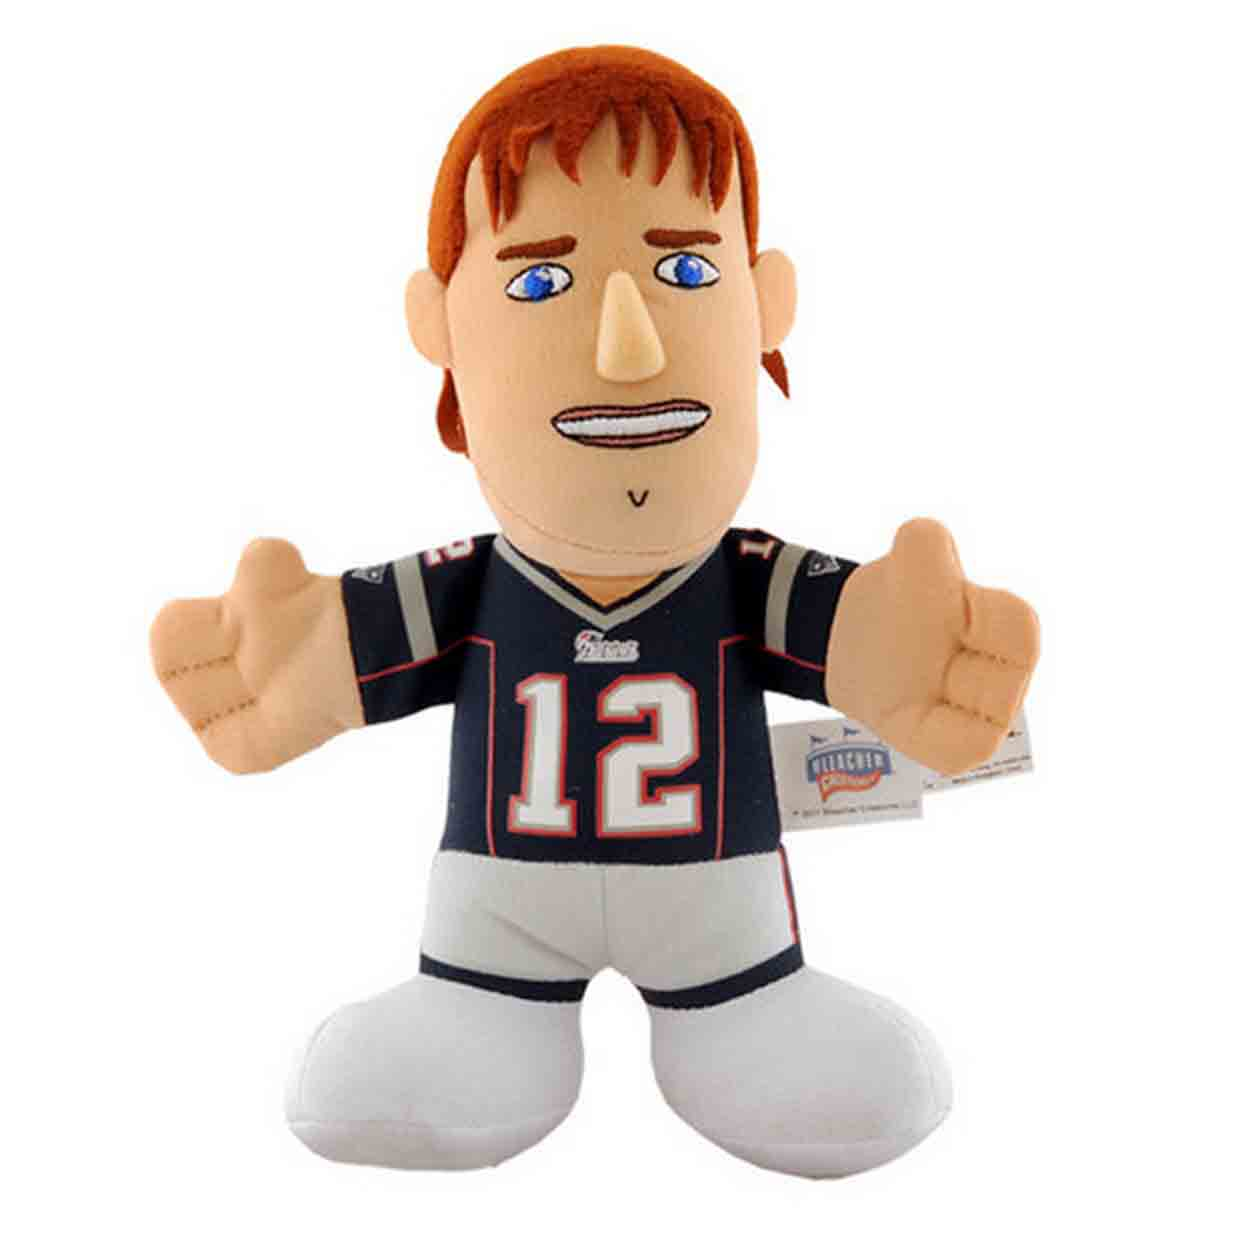 "Bleacher Creatures 7"" Plush Figure - New England"